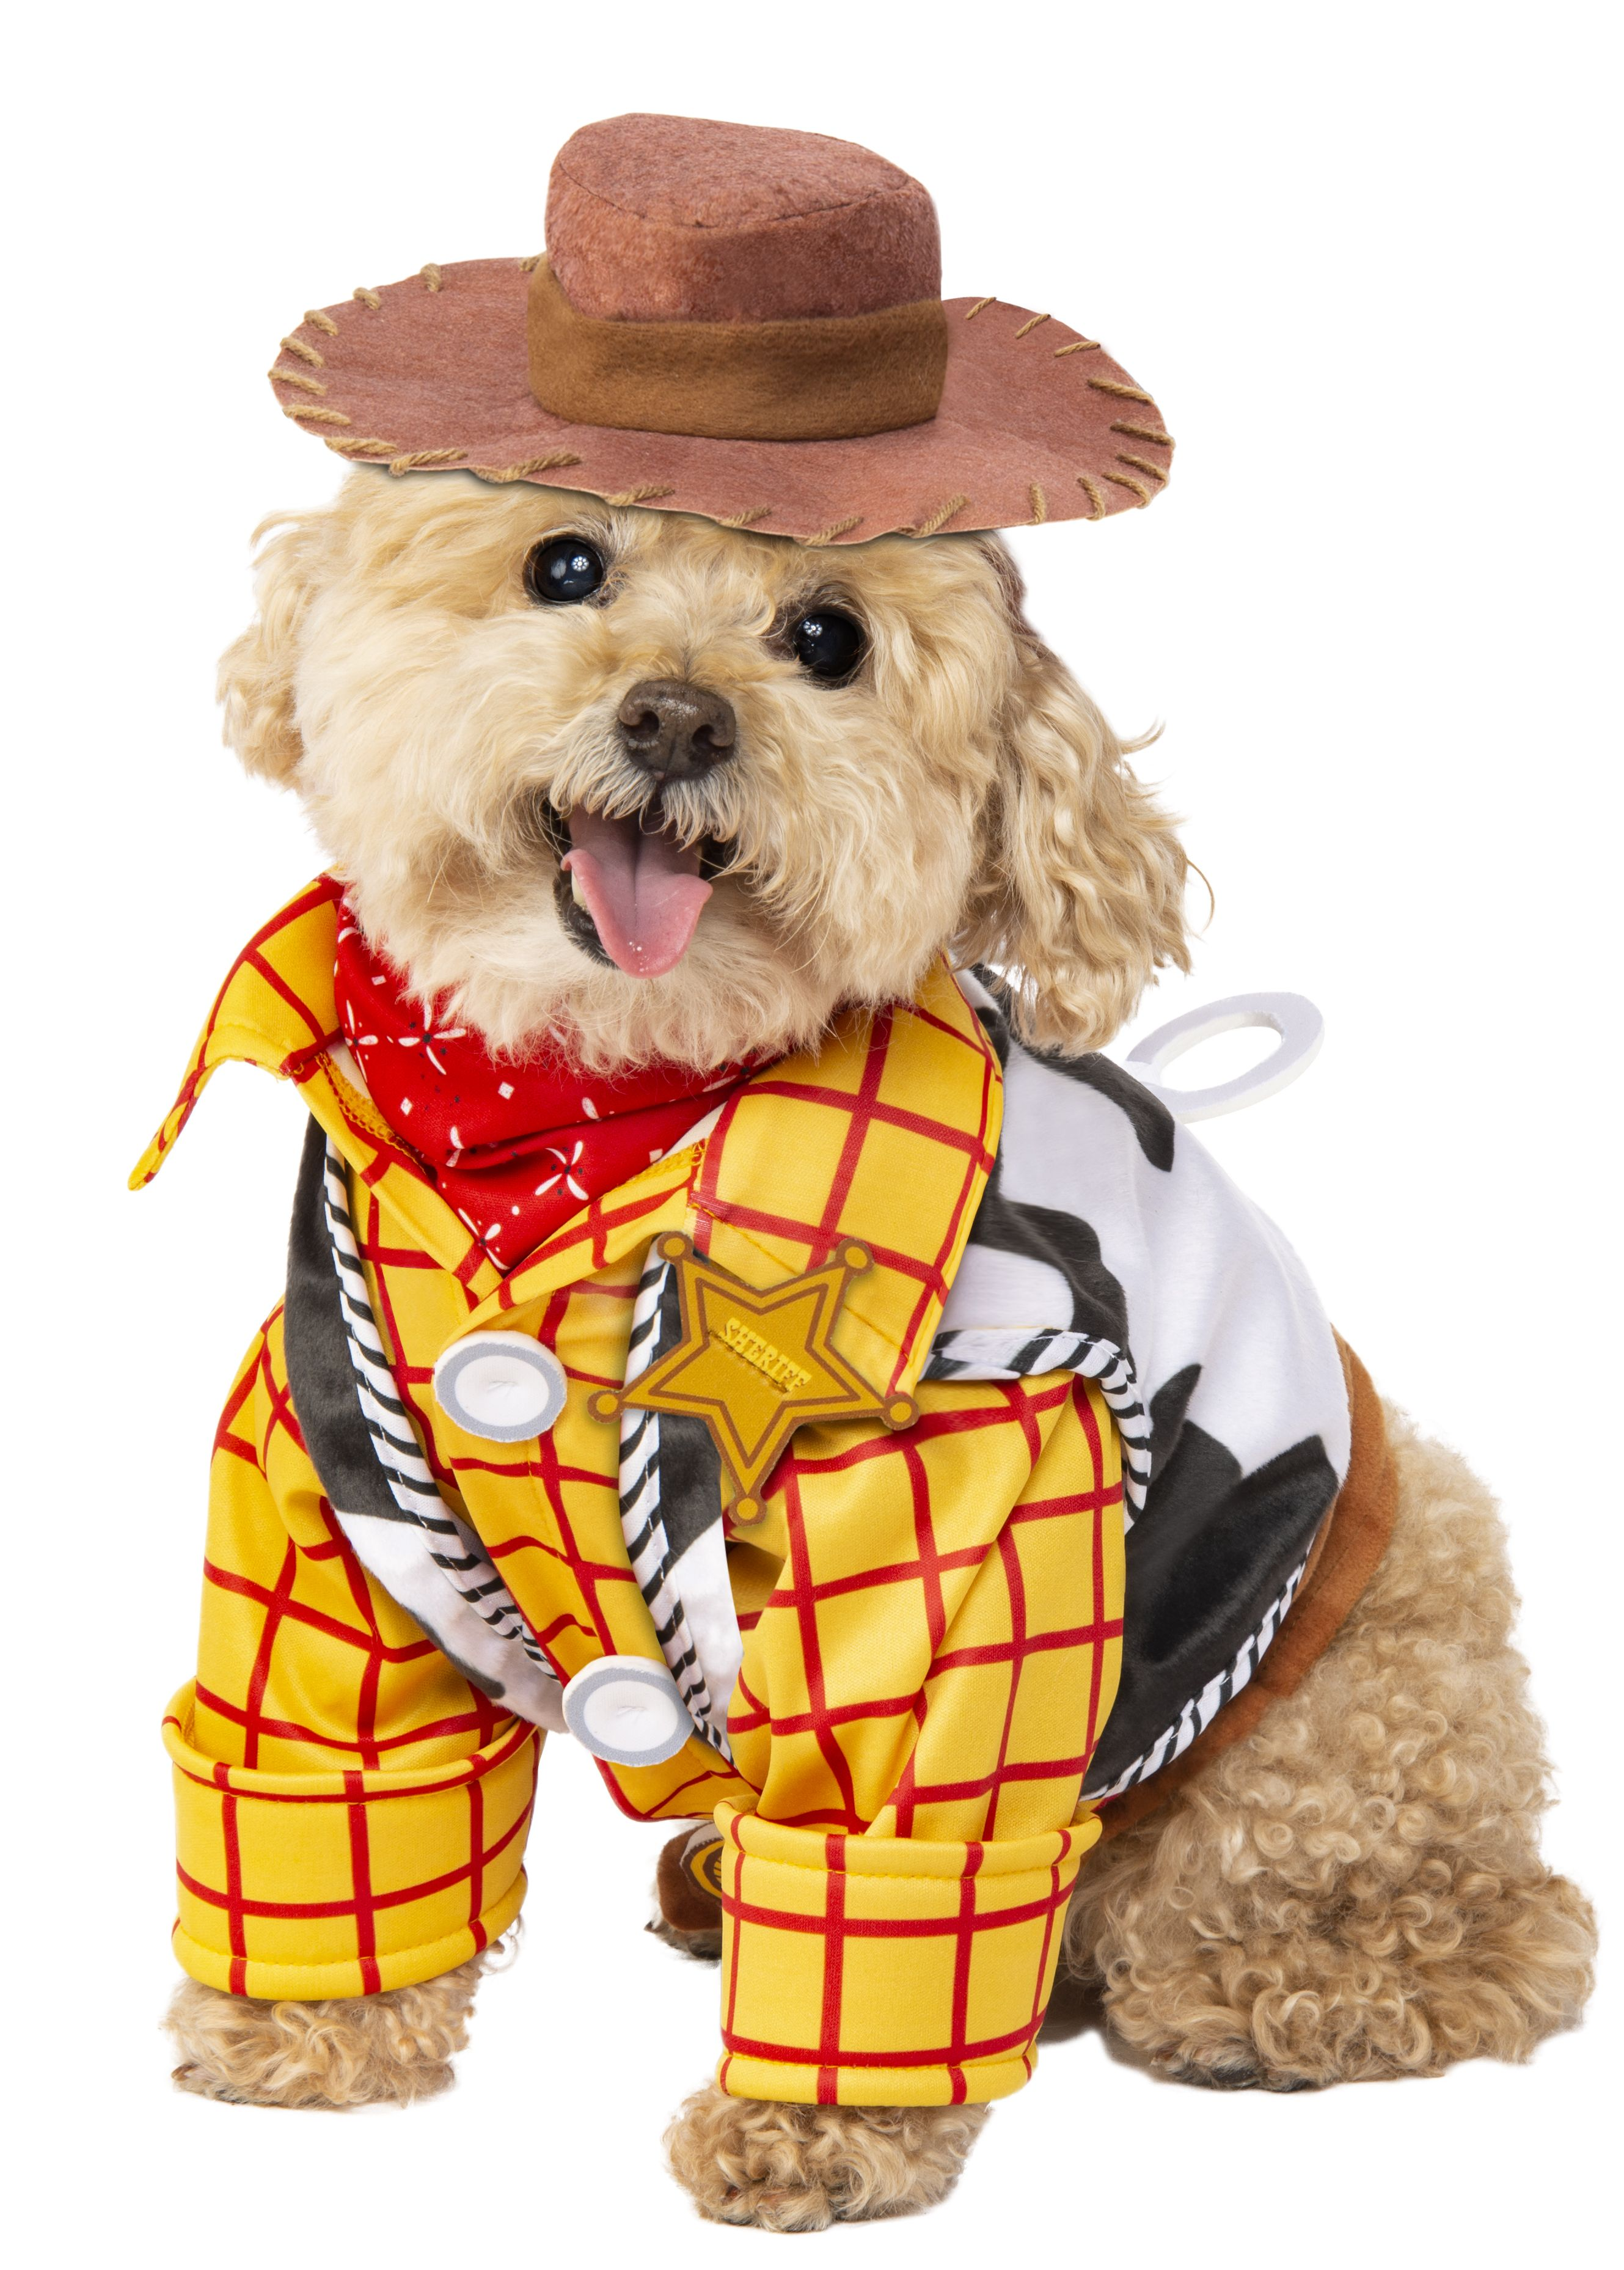 Toy Story Lovers Rejoice Your Pet Can Now Dress Up As Woody